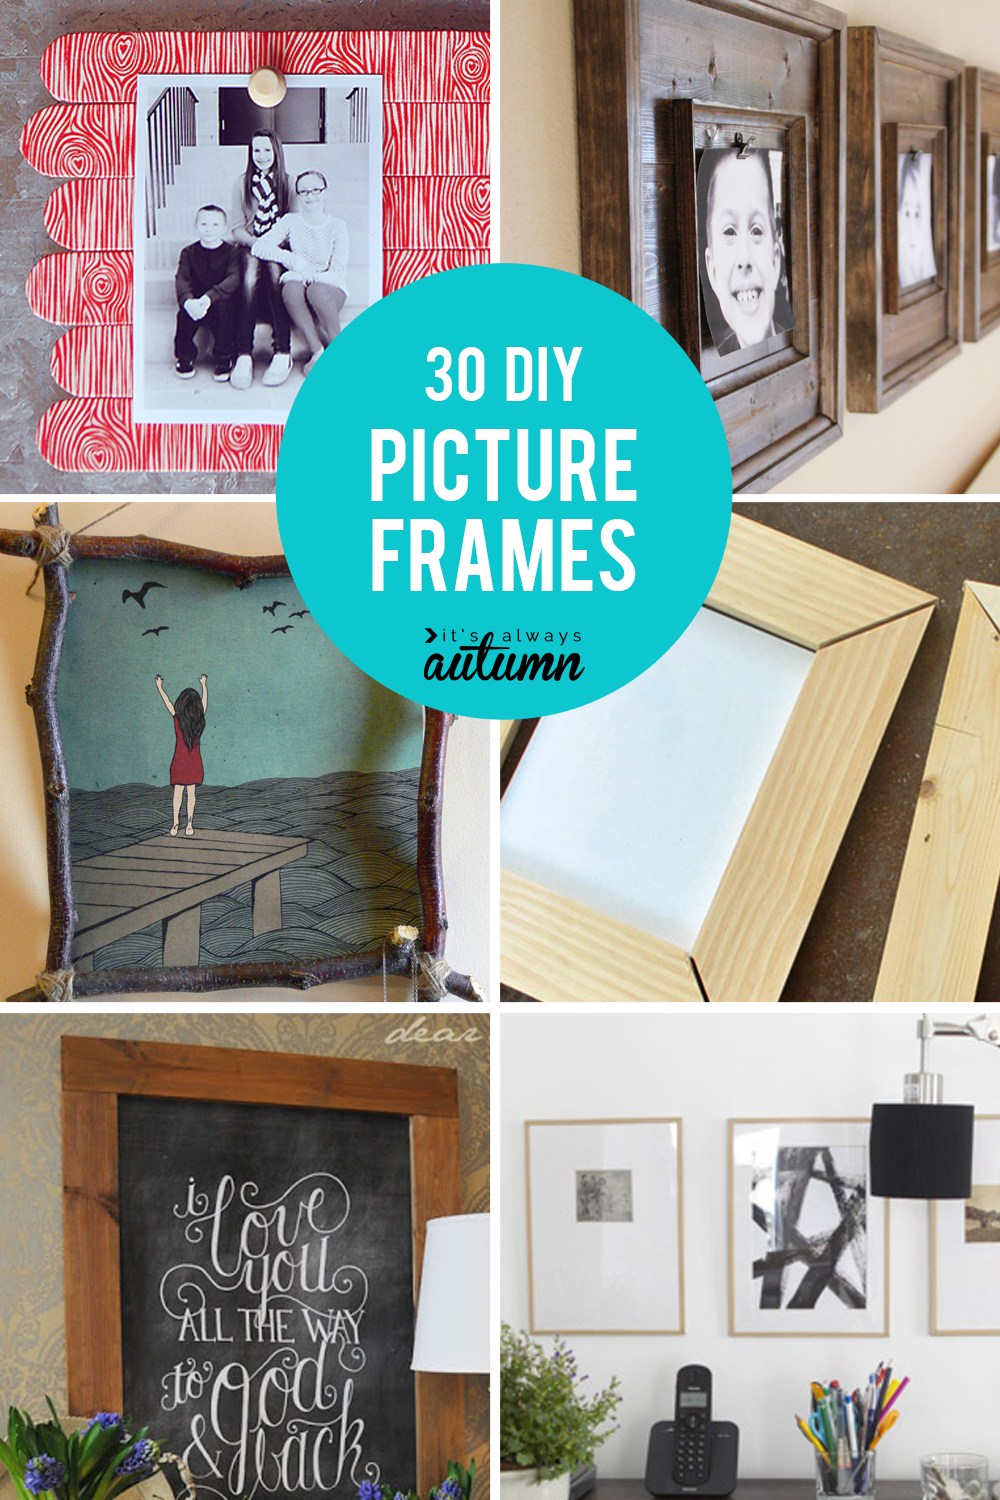 Interesting Any Size Or Diy Frame Tutorials Always Autumn Diy Frame Kits Diy Frame Mat Diy Frame How To Make A Frame photos Diy Picture Frame